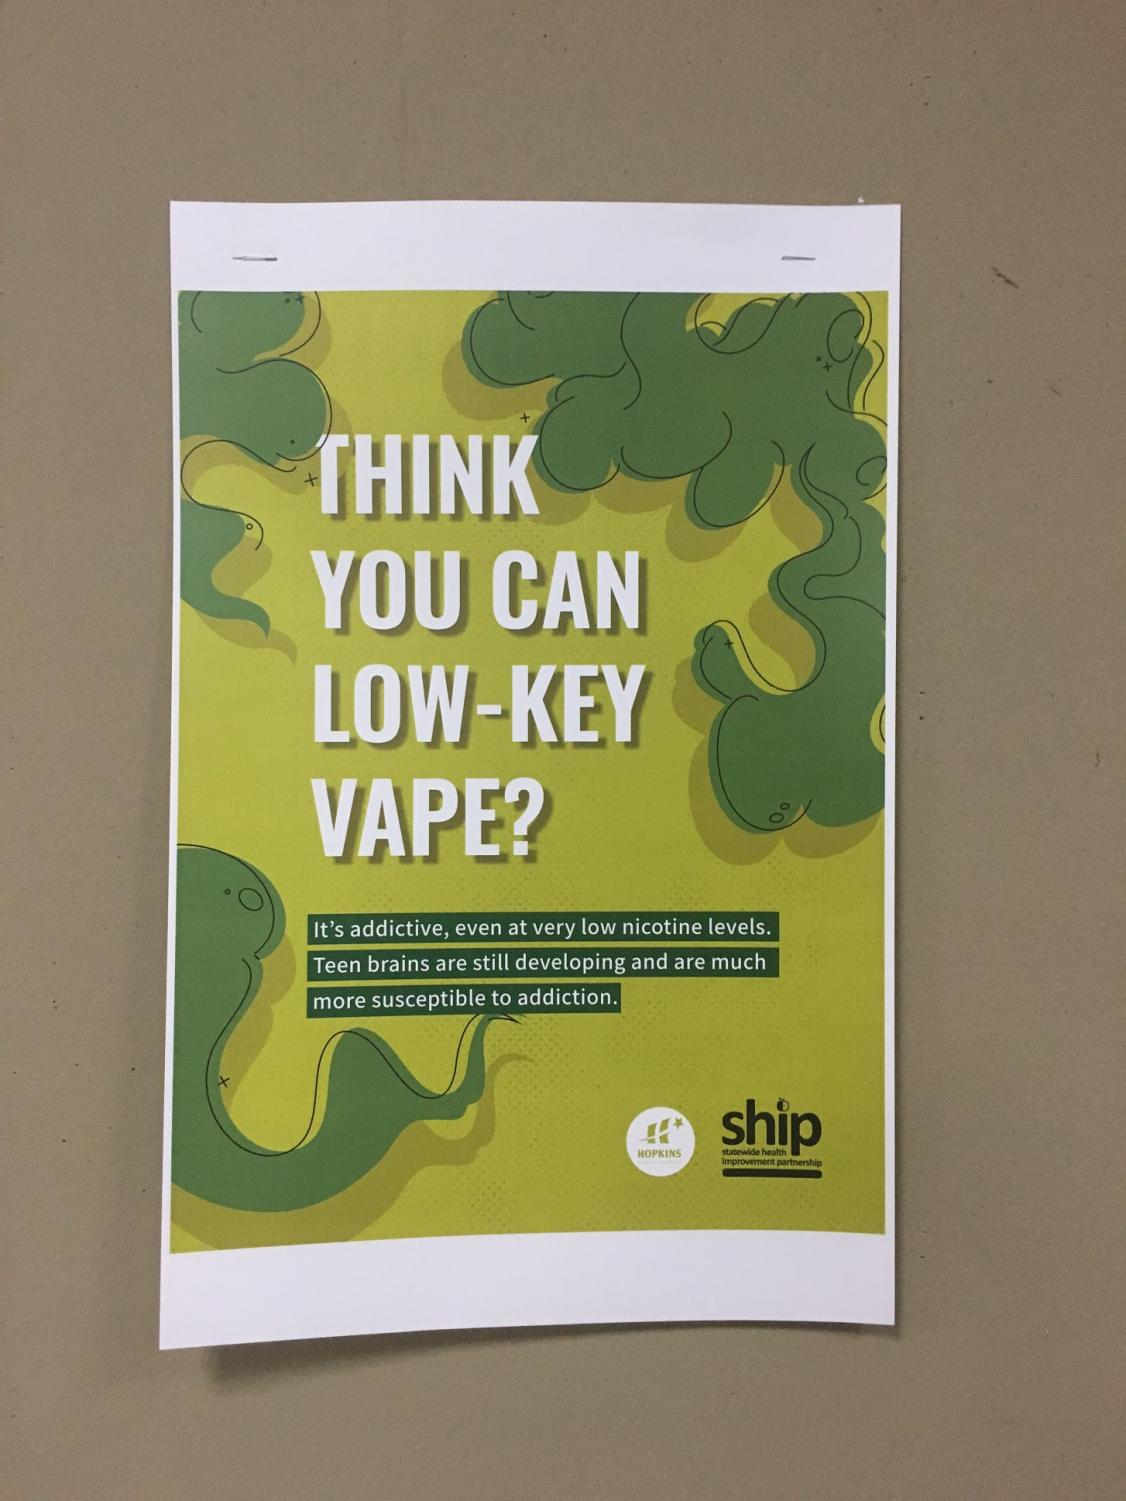 An example of the new vaping posters, this one found in the West Wing. These have been revamped from last year.